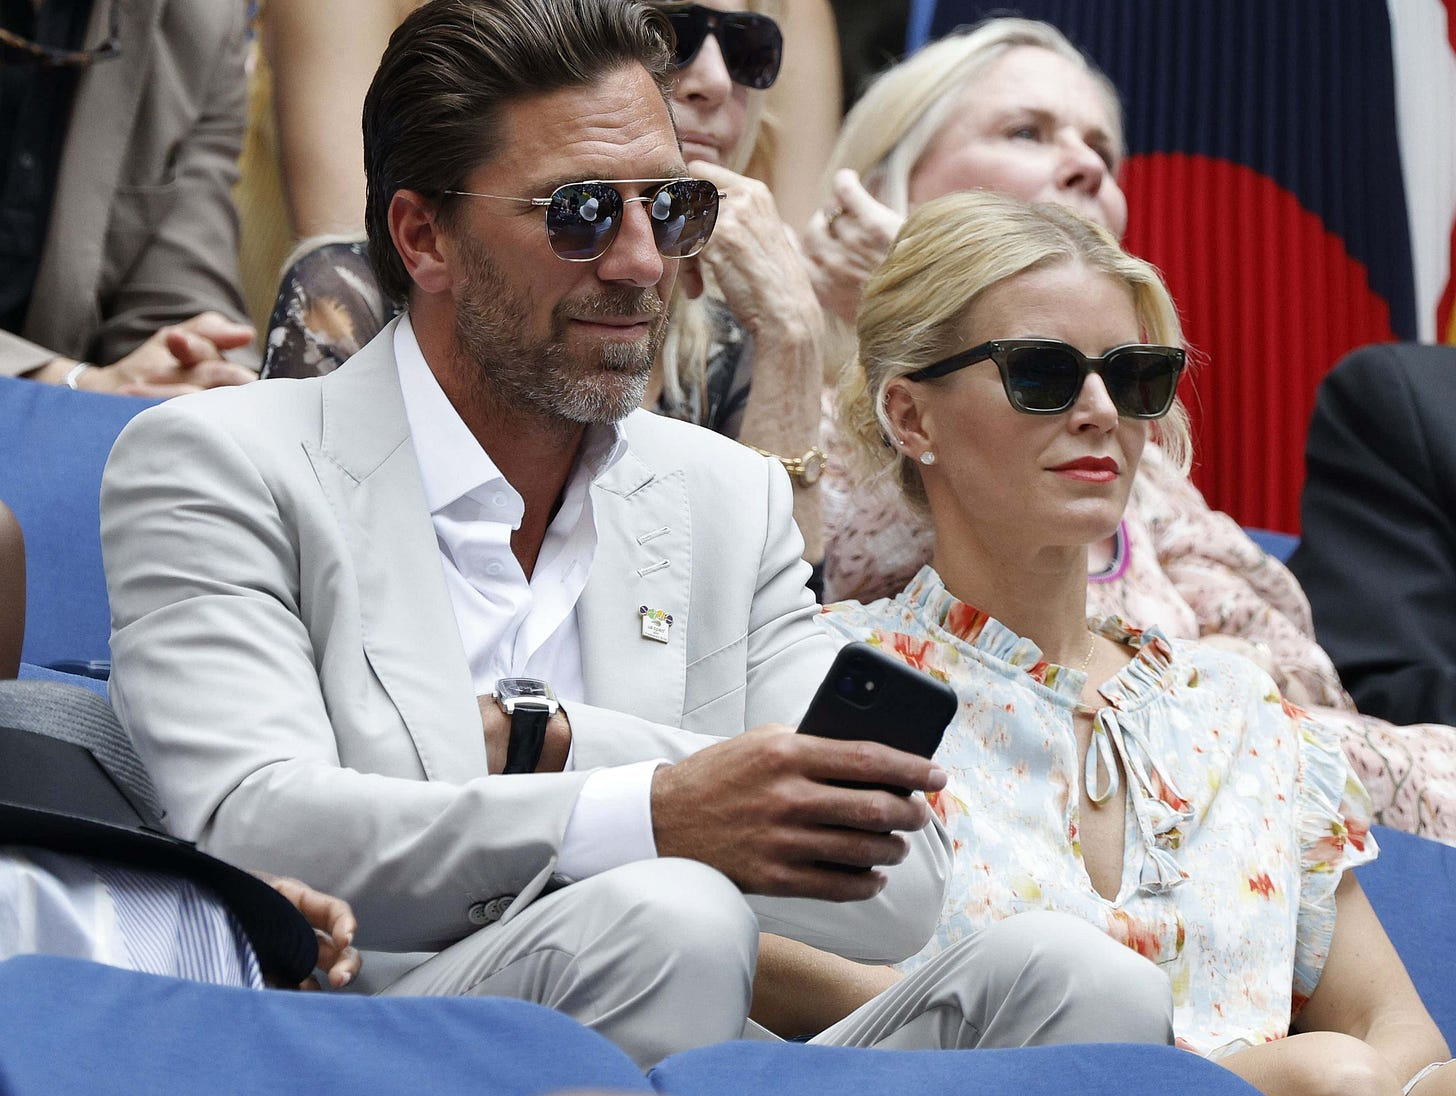 Brad Pitt Paled In Comparison To The God Henrik Lundqvist At The US Open  Final | Barstool Sports